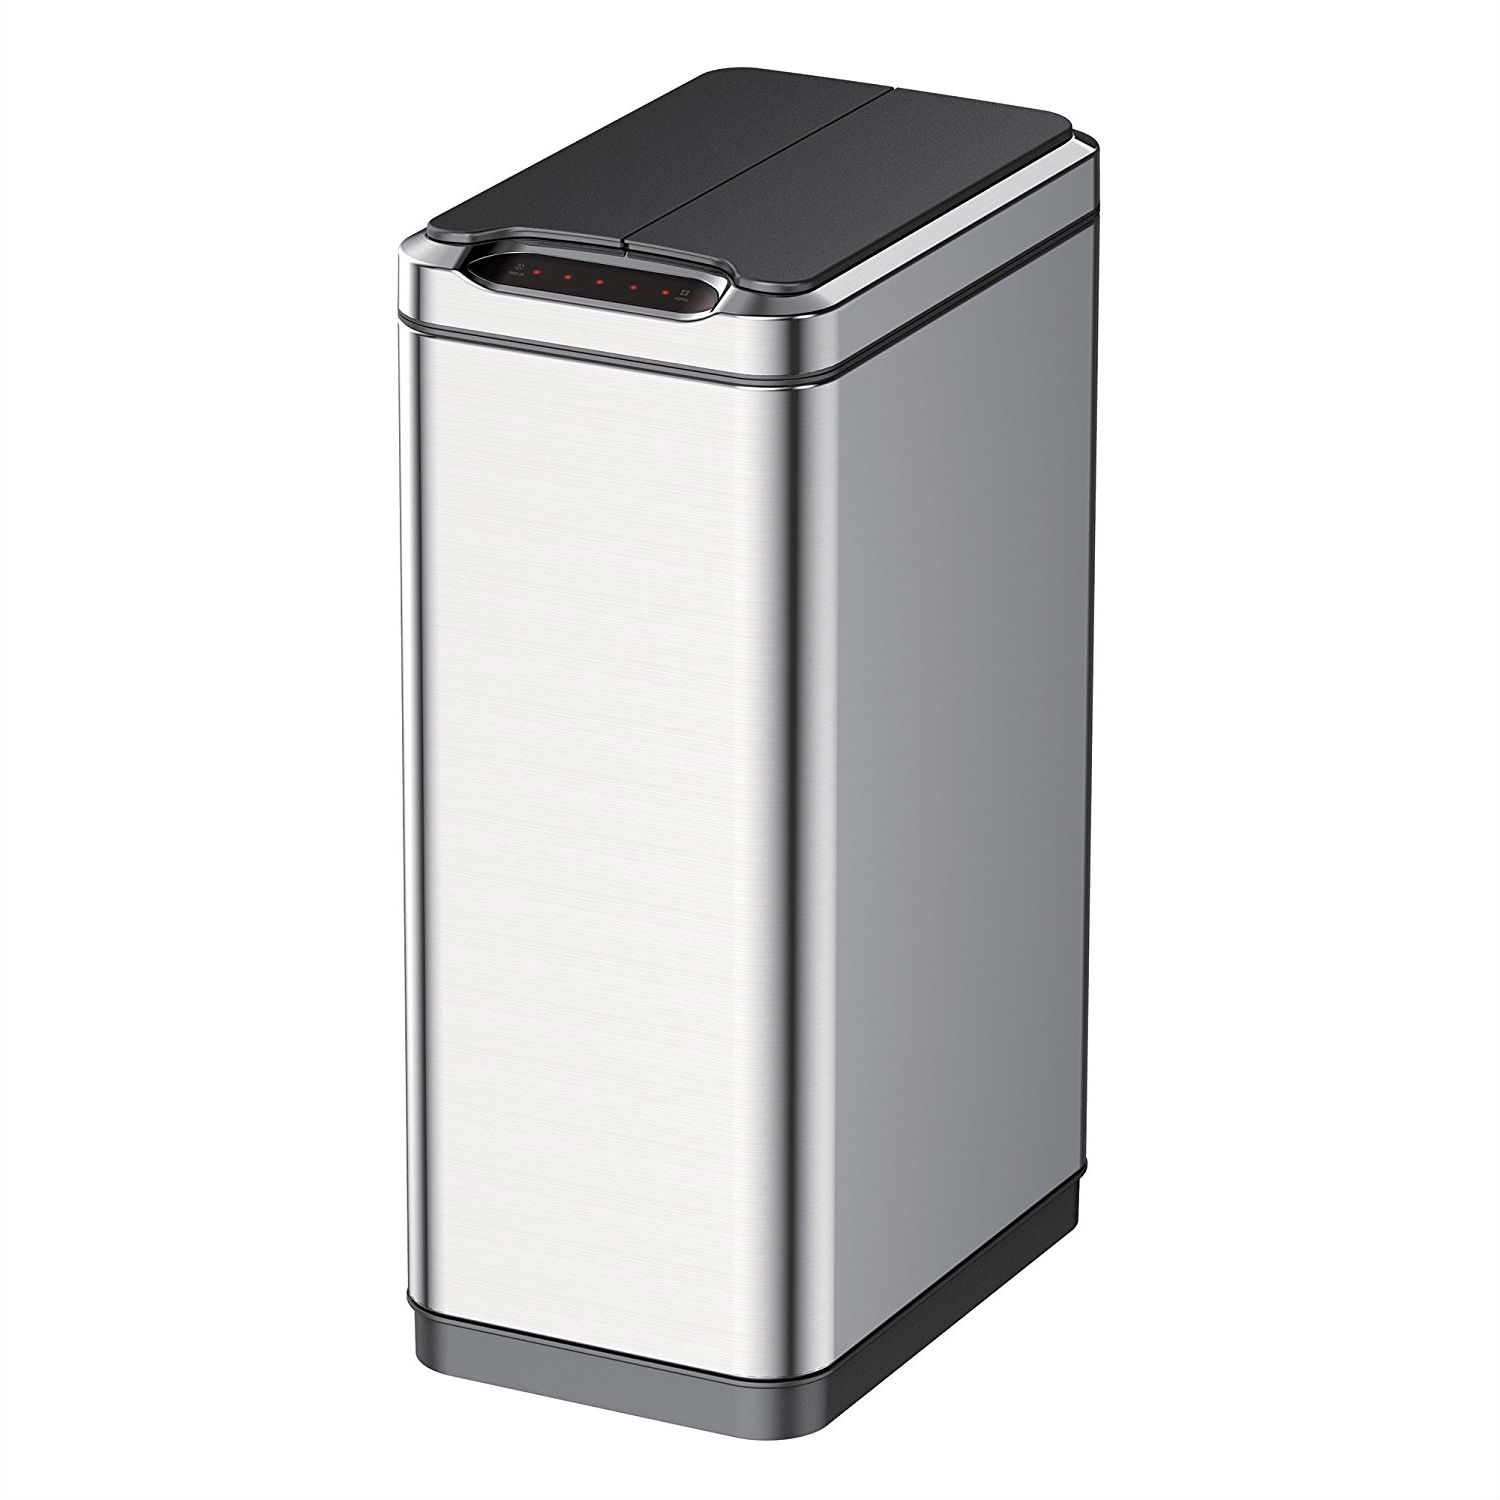 Stainless Steel 13 Gallon Touchless Motion Sensor Kitchen Trash Can